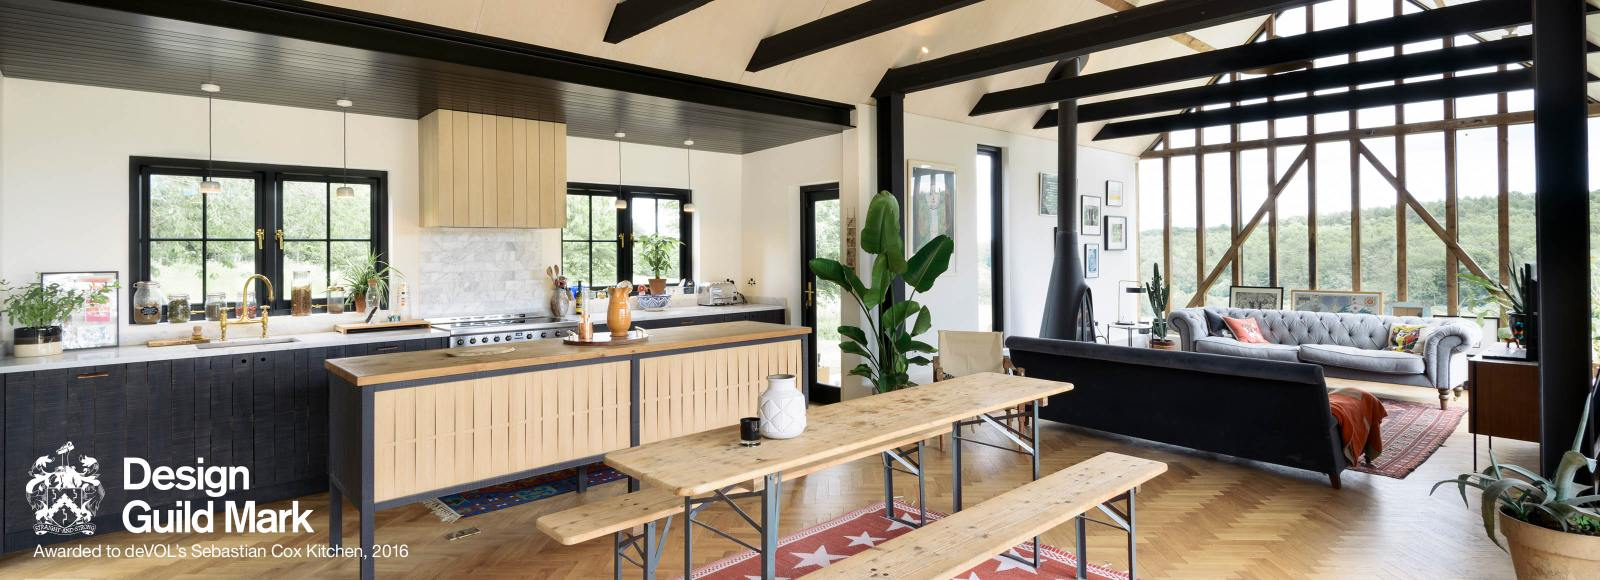 Bespoke Kitchens, Bathrooms and Interiors by deVOL photo 8